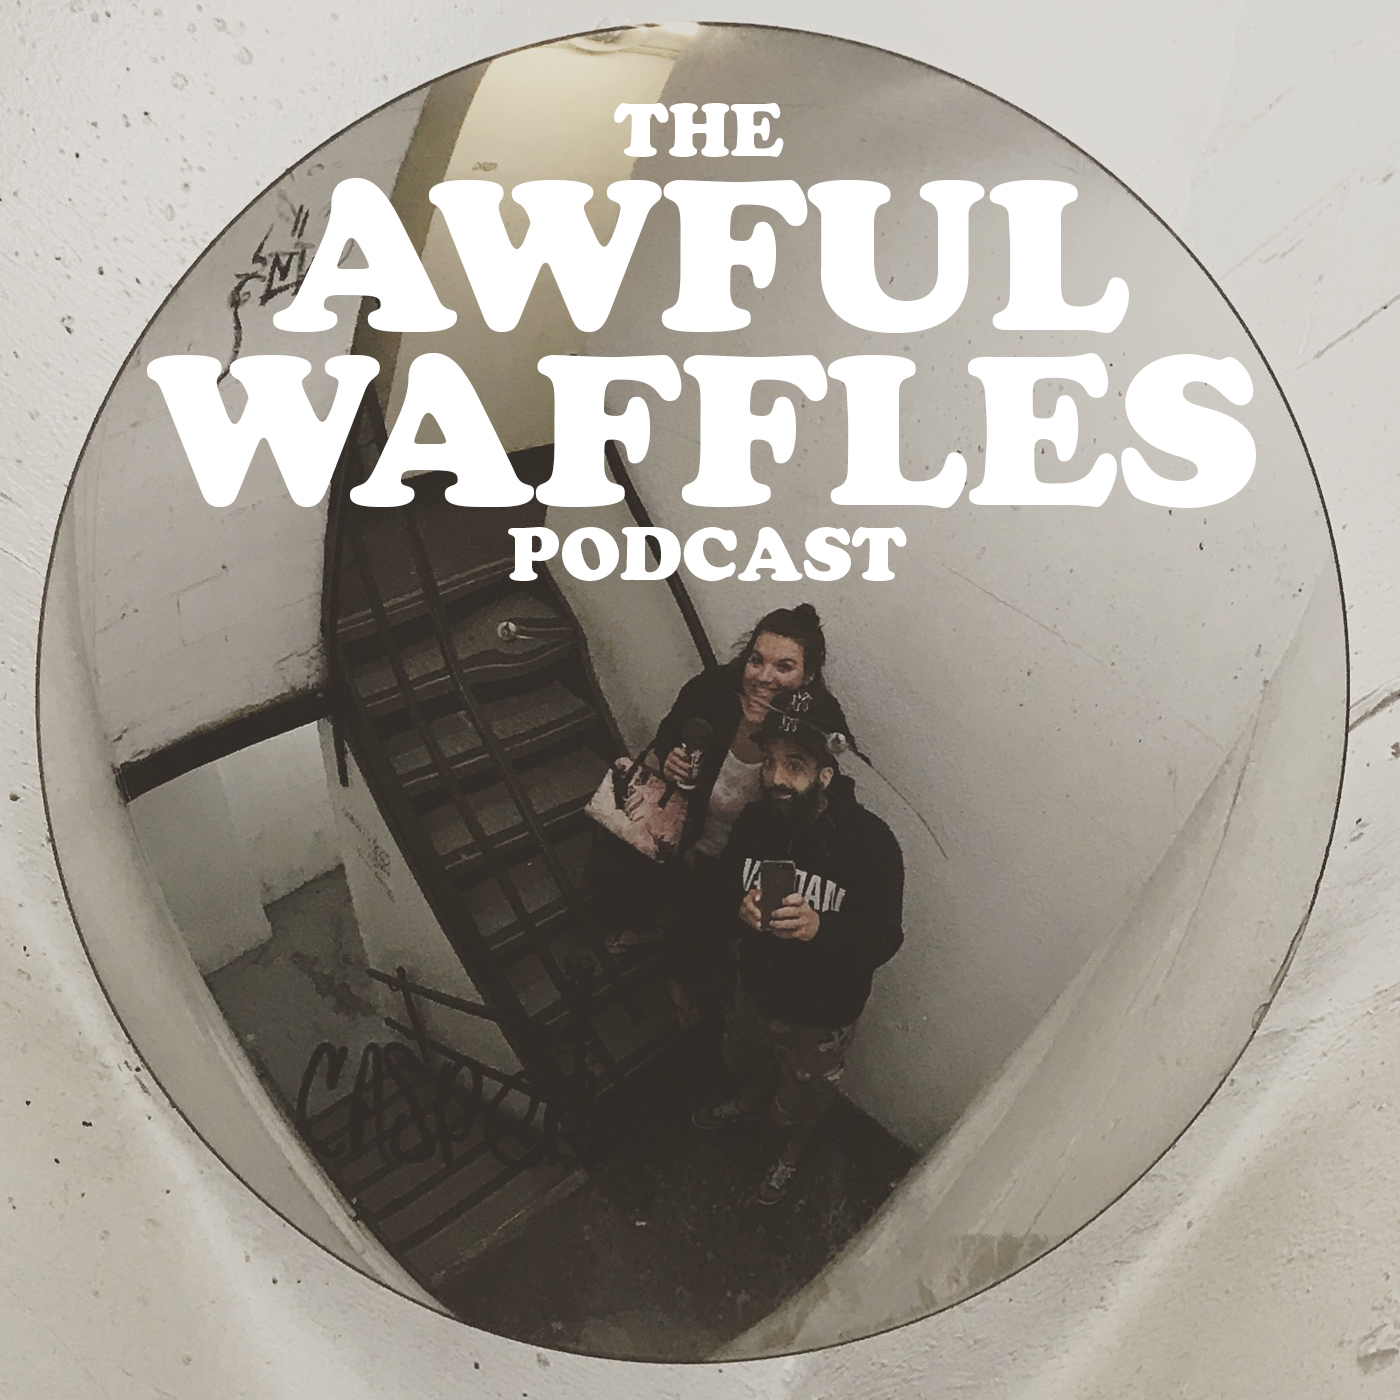 The Awful Waffles Podcast show art